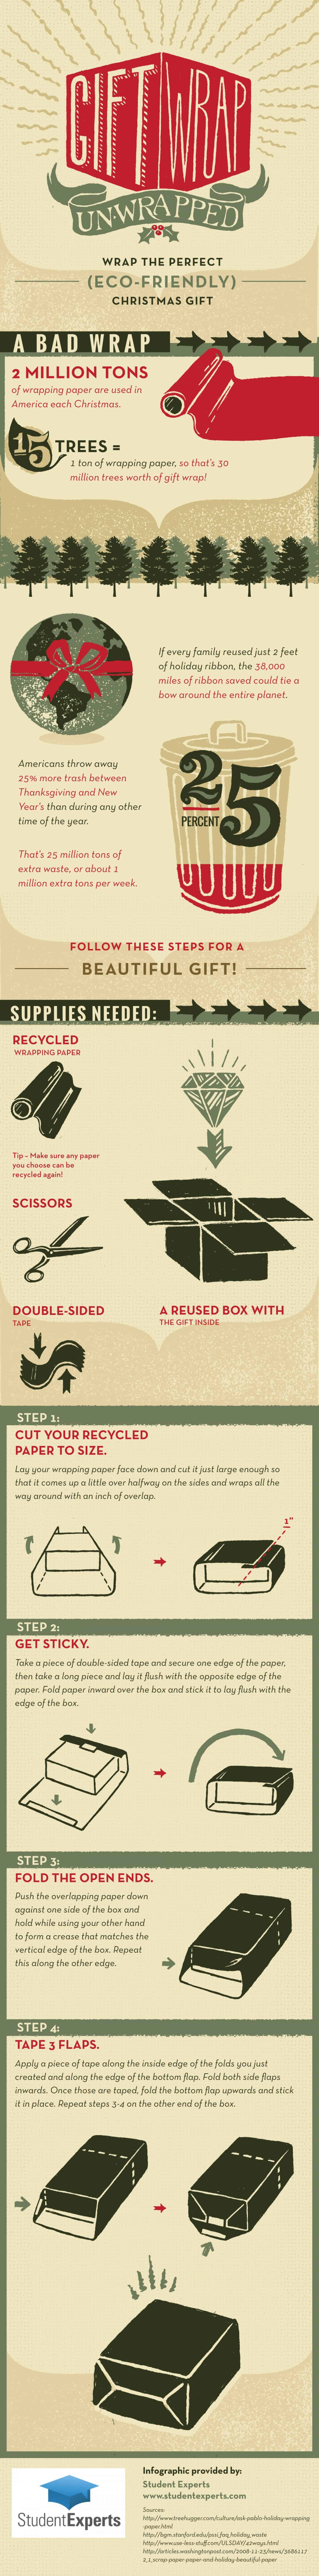 Gift Wrap Unwrapped [infographic]